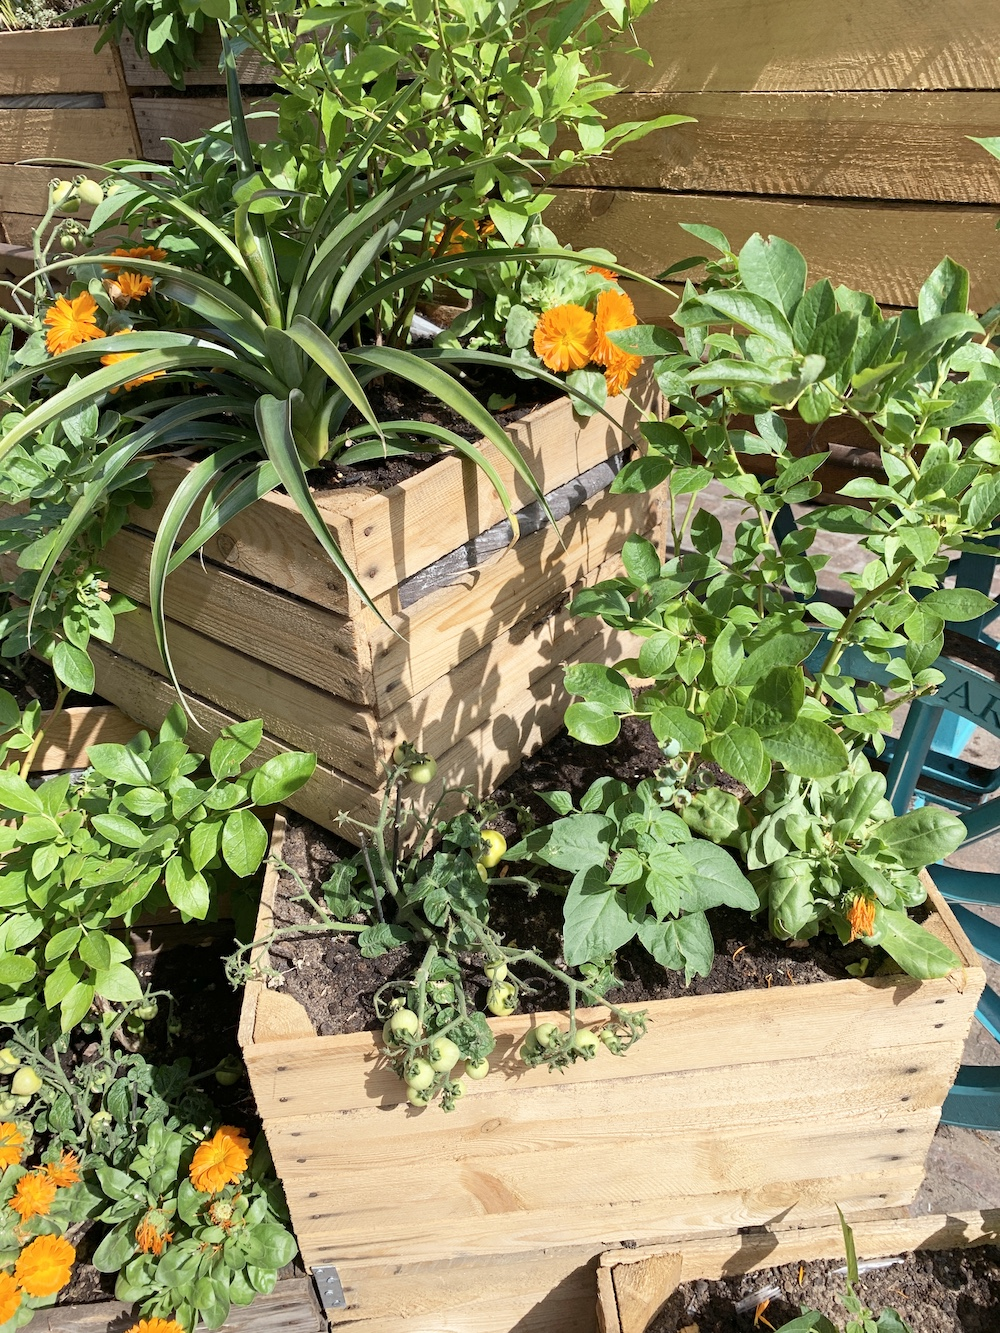 Crate Gardening for Small Spaces Crate Gardening #Garden #Gardening #SmallSpace #SmallSpaceGardening #ContainerGardening #VegetableGarden #HerbGarden #PorchGarden #PatioGarden